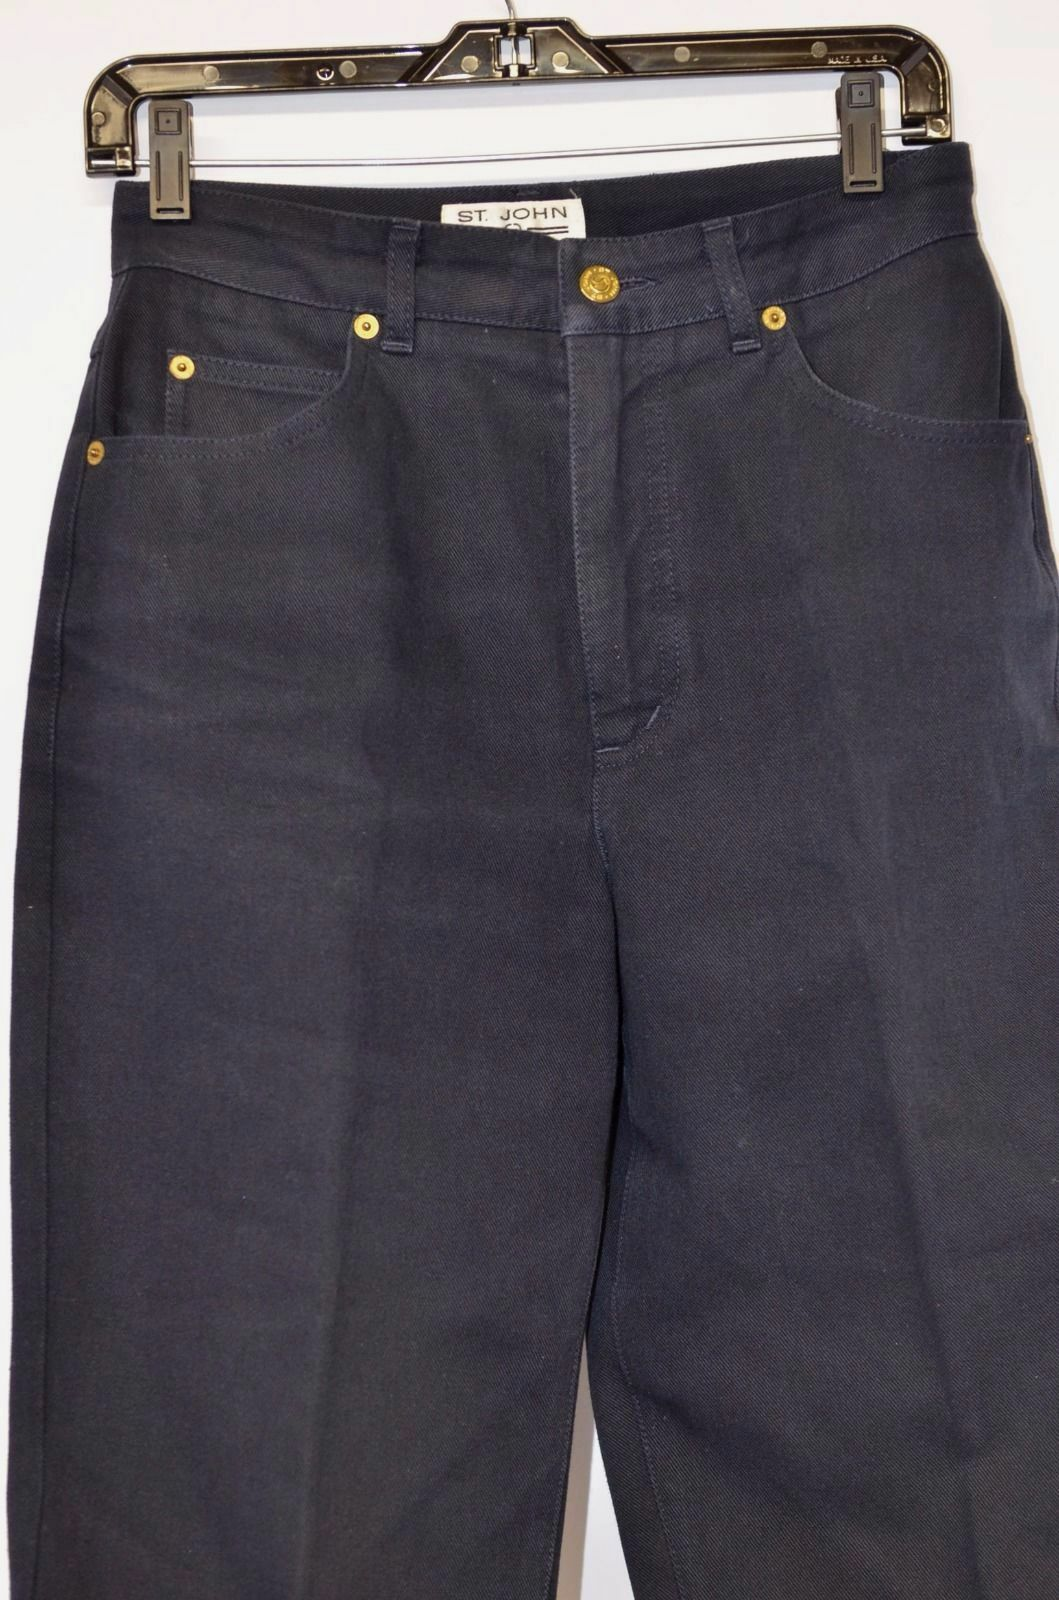 St. John Size 6 Signature Jeans Navy bluee Pants gold Tone Hardware Casual Day